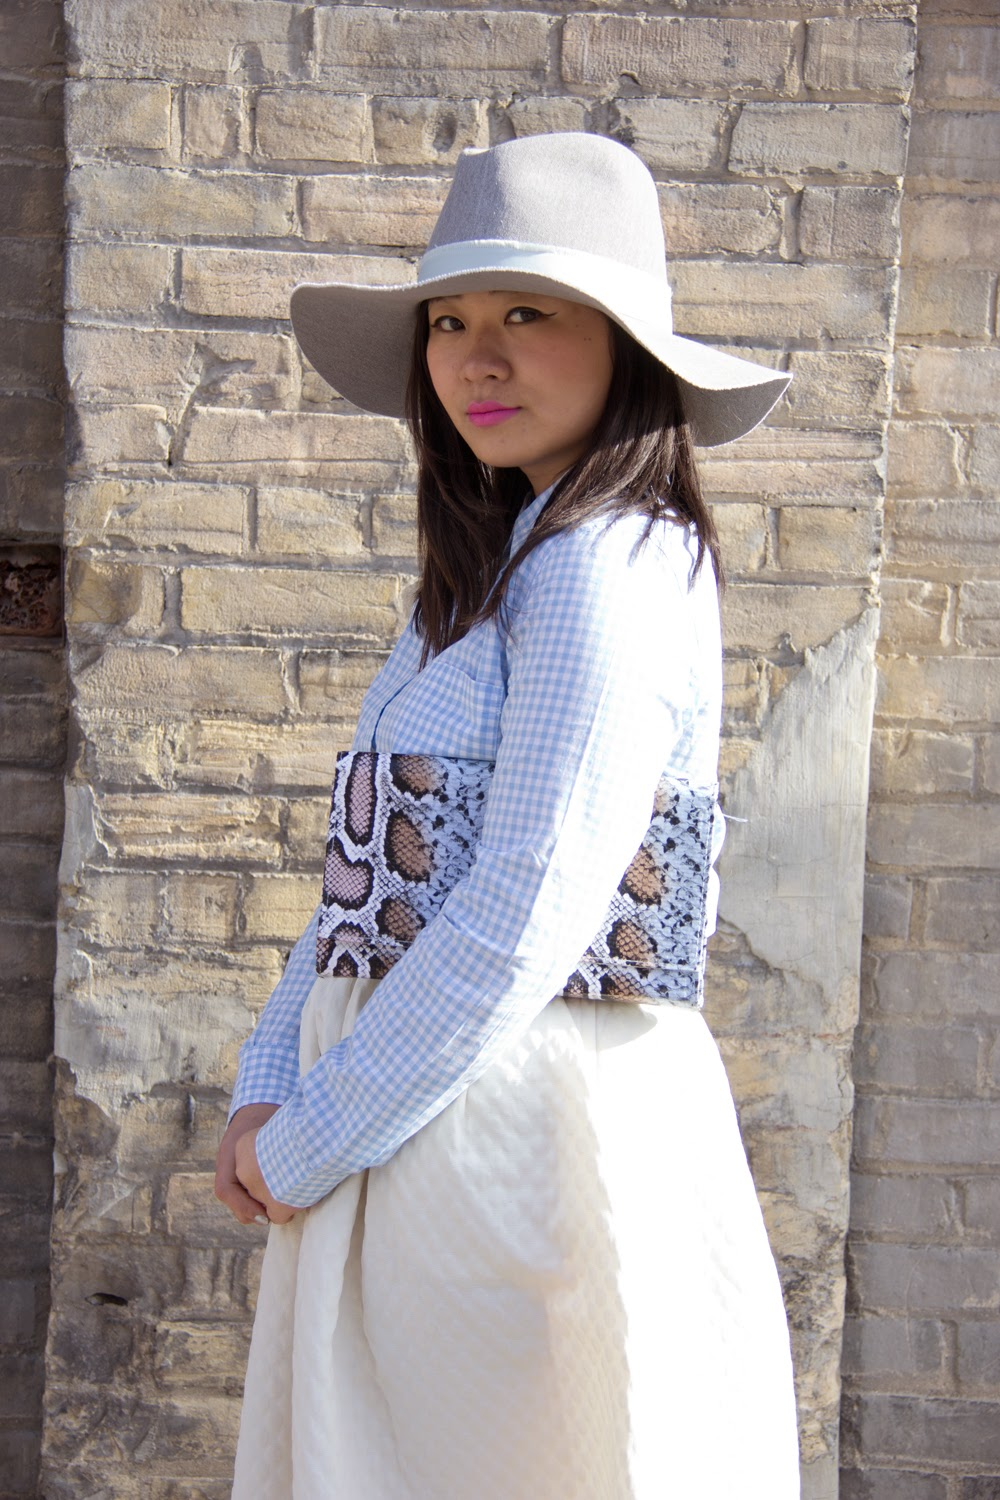 Spring-Look, Zara-grey-fedora-hat, Gap-Checkered-Shirt, White-Midi-Skirt, Blue-Pumps